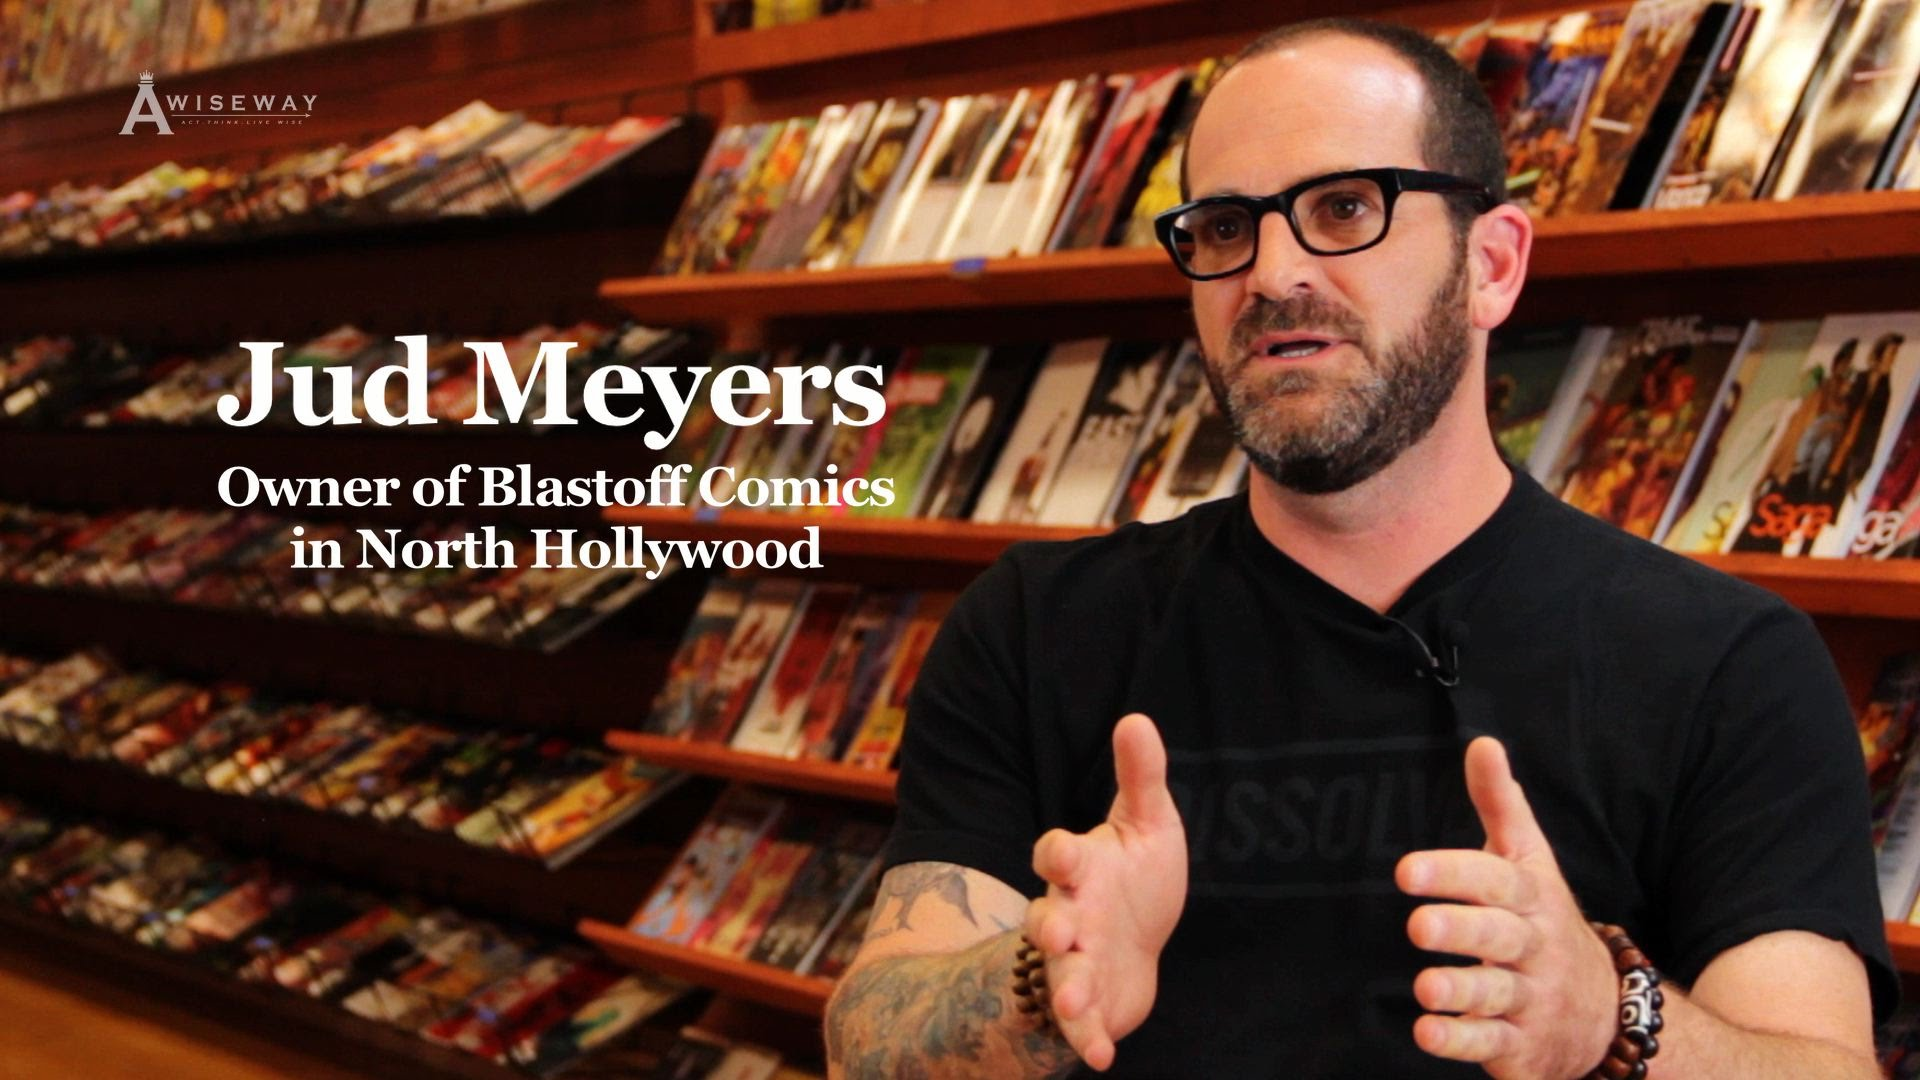 Blastoff Comics Owner, Jud Meyers Shares How His Business Changed After Starting a Family